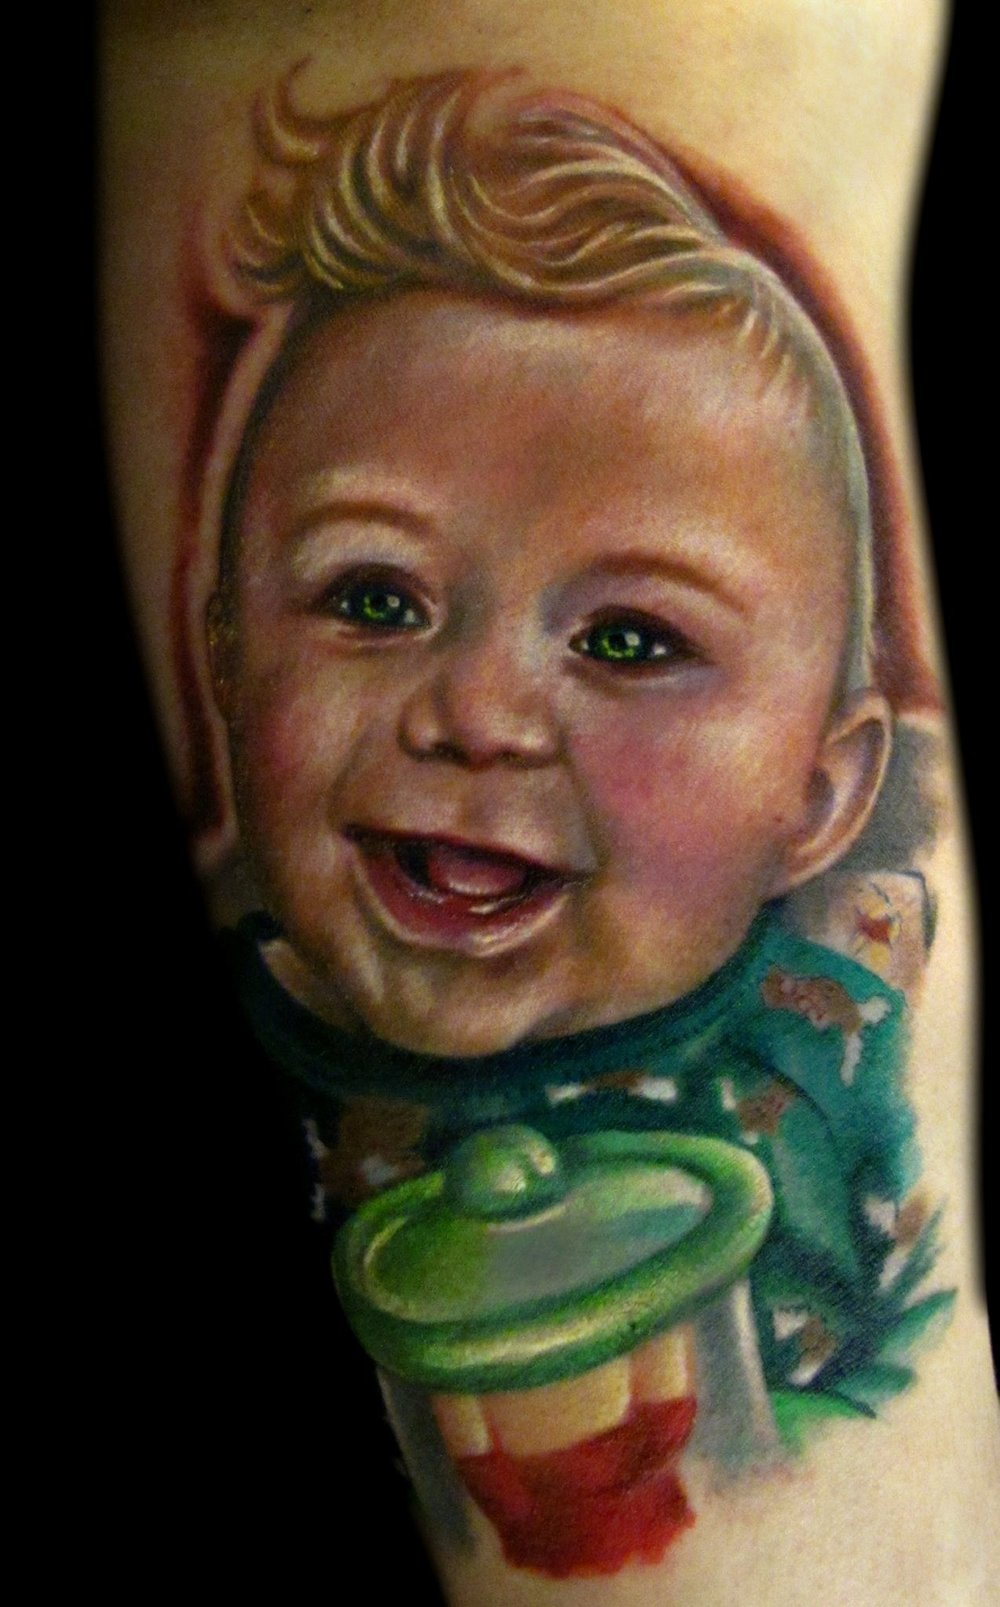 Tattoo Baby & Cup Realistic Portrait Color Liz Cook Dallas Texas 300res.jpg